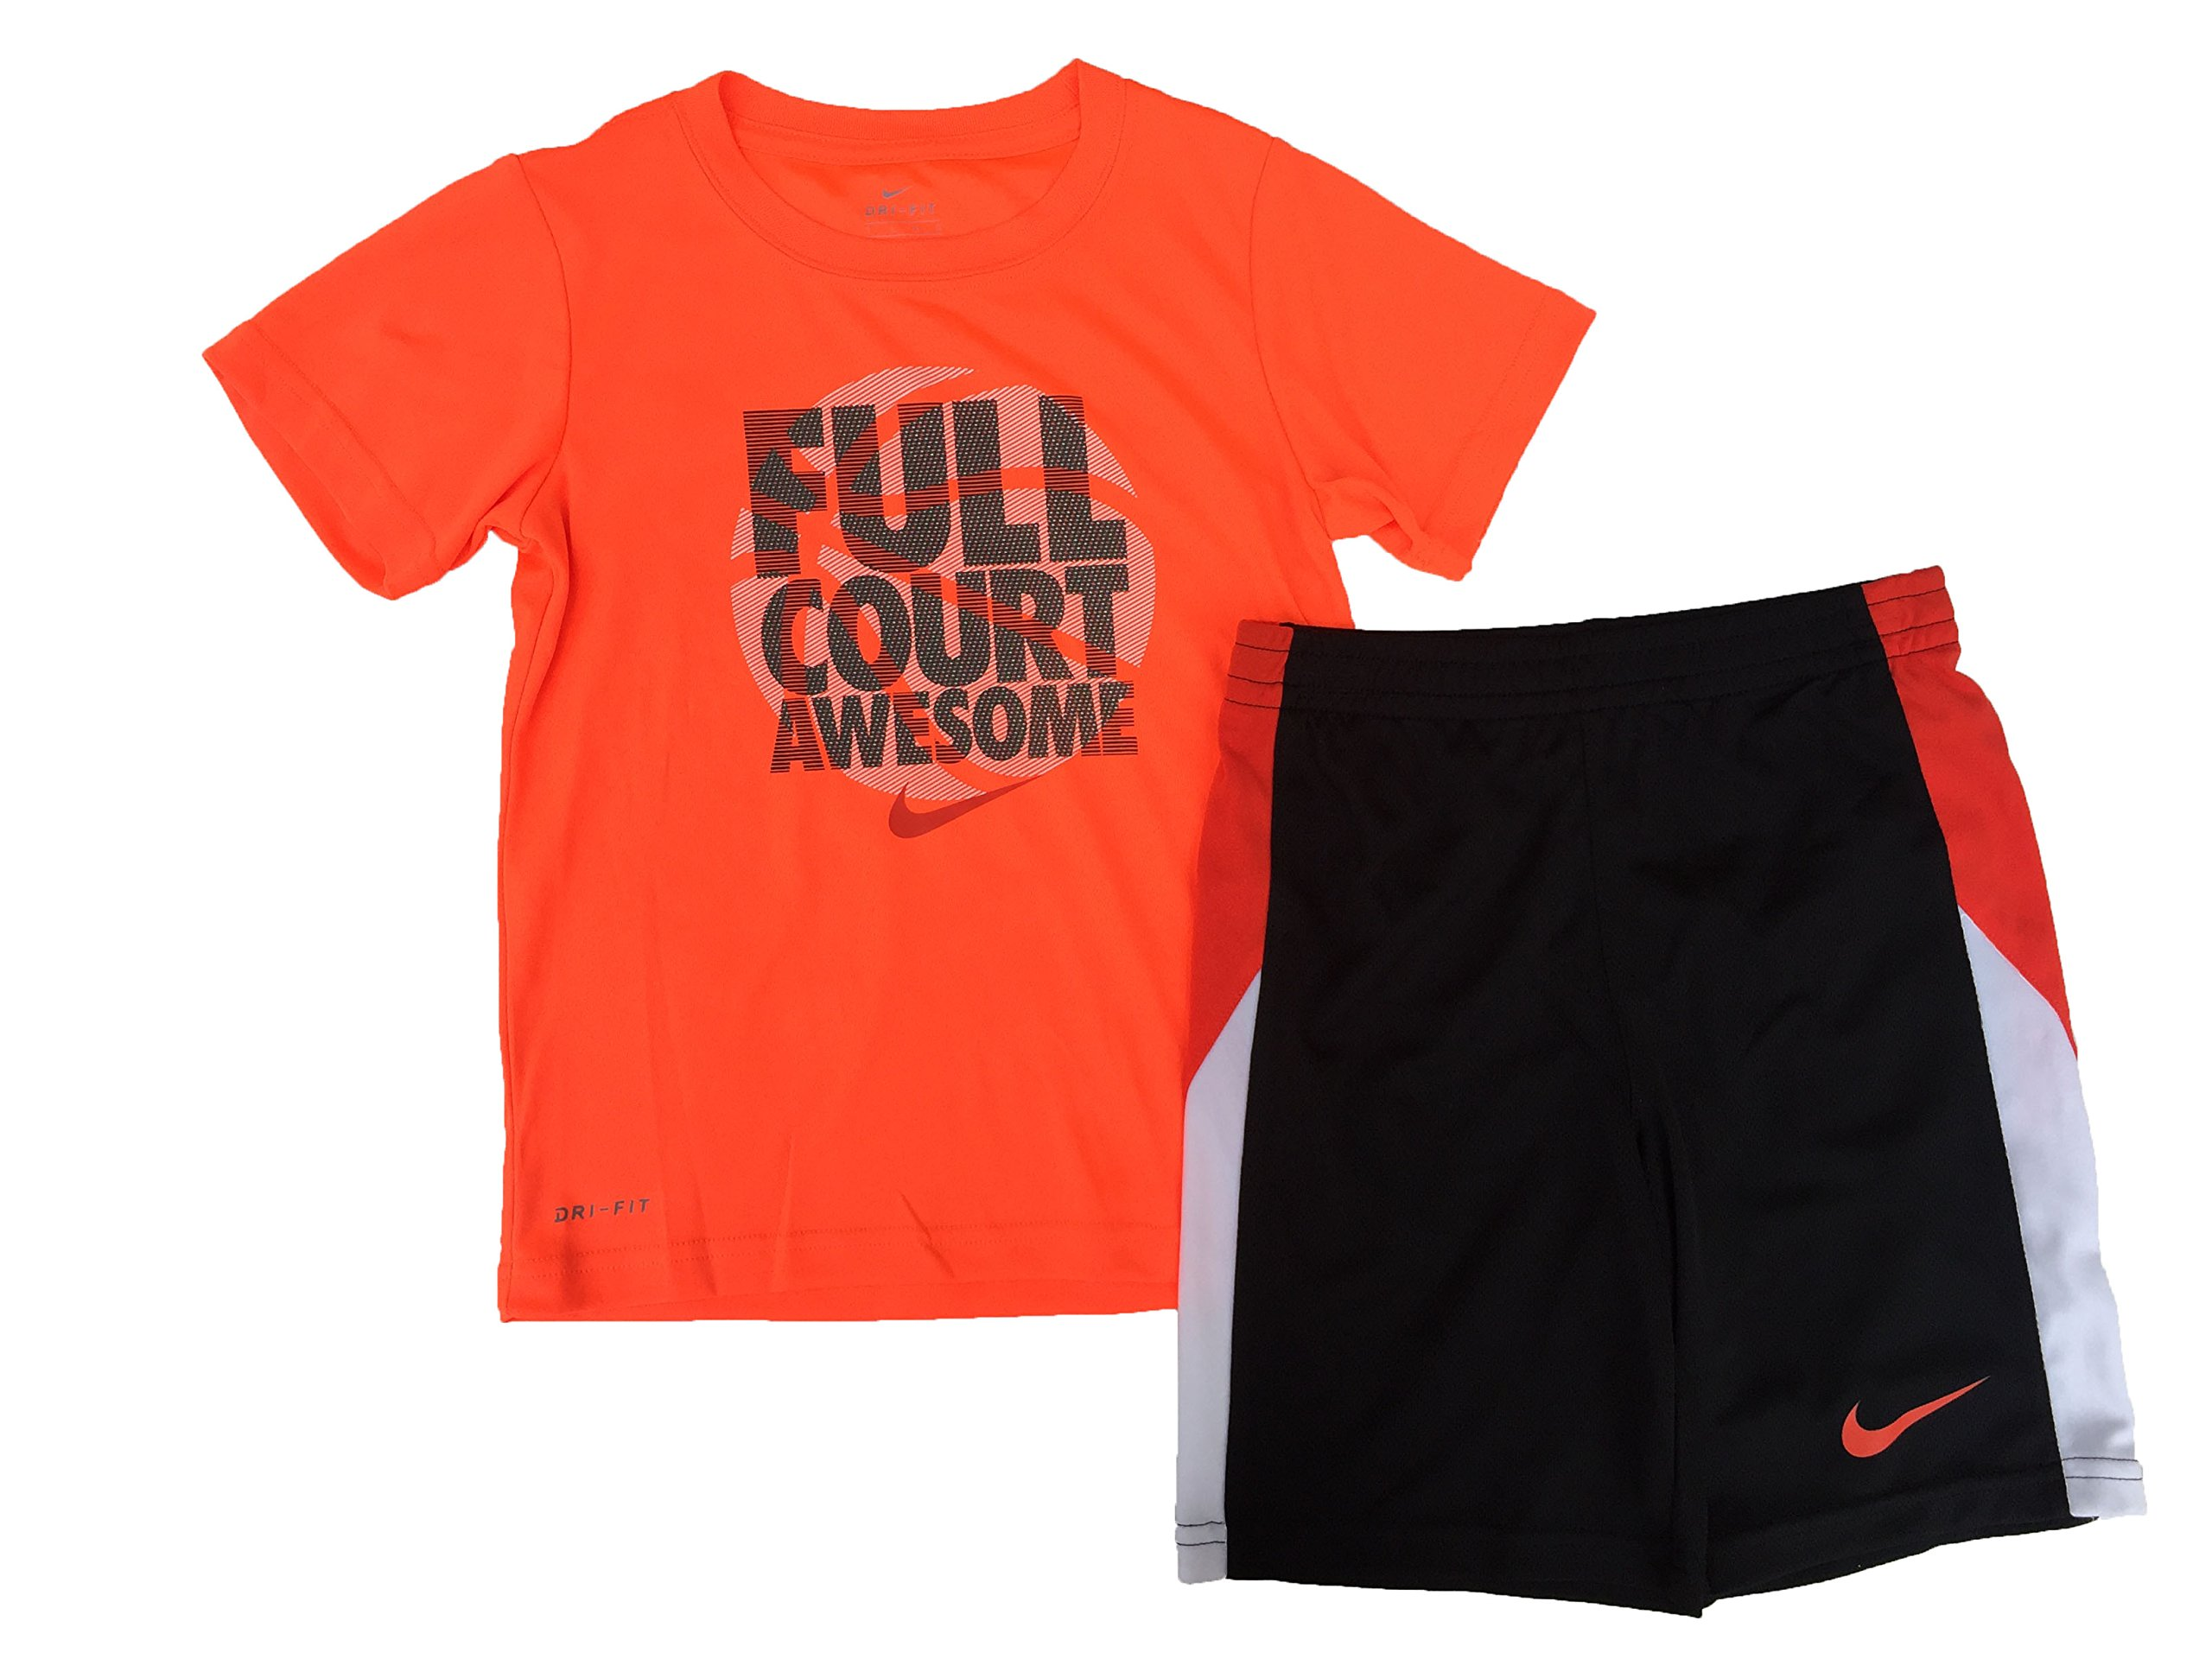 NIKE Boys Full Court Awesome T-Shirt and Shorts Set Hyper Crimson Size 5 by Nike